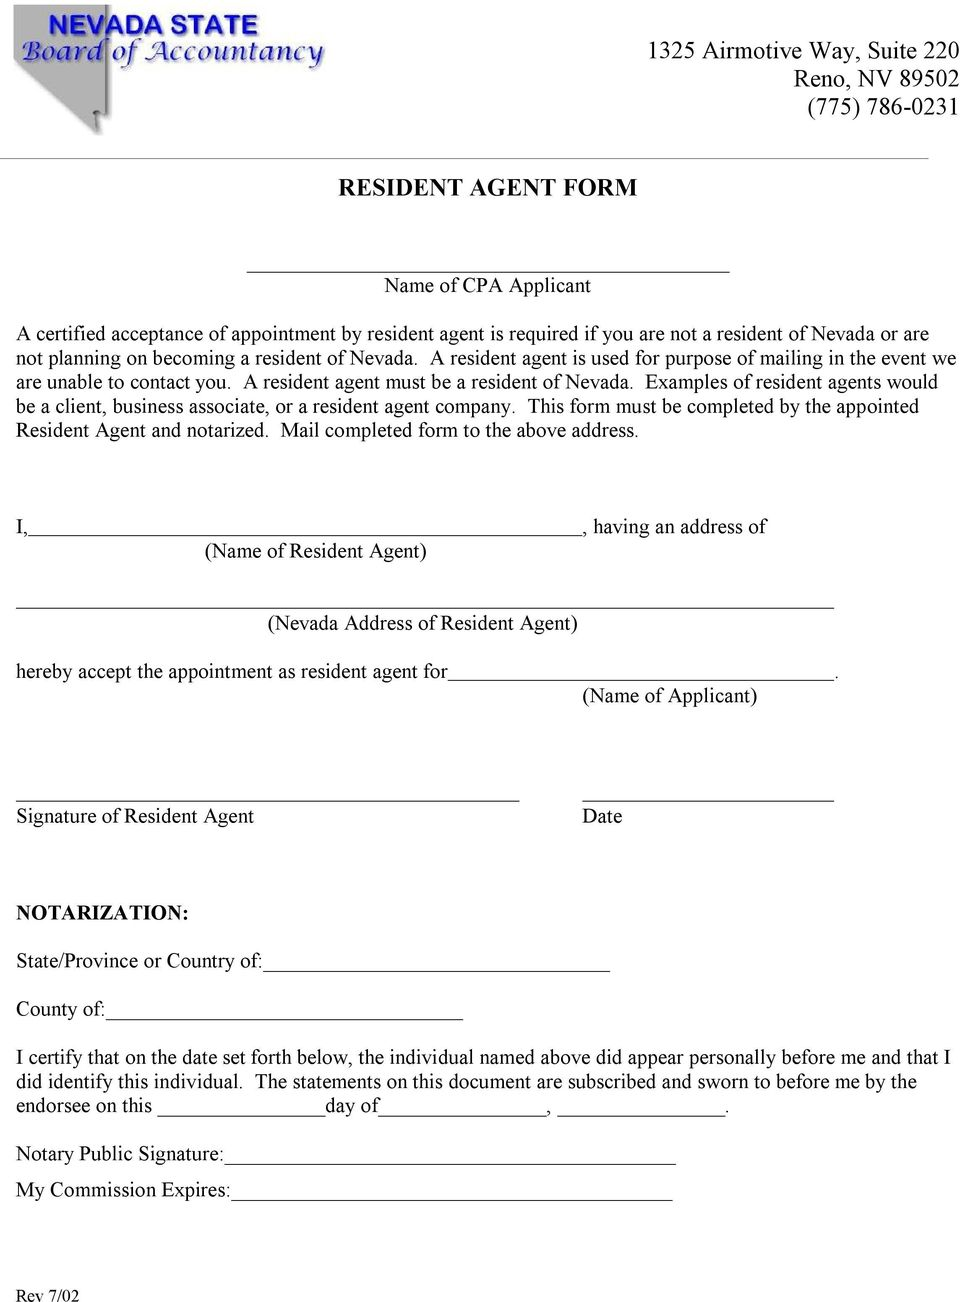 Examples of resident agents would be a client, business associate, or a resident agent company. This form must be completed by the appointed Resident Agent and notarized.